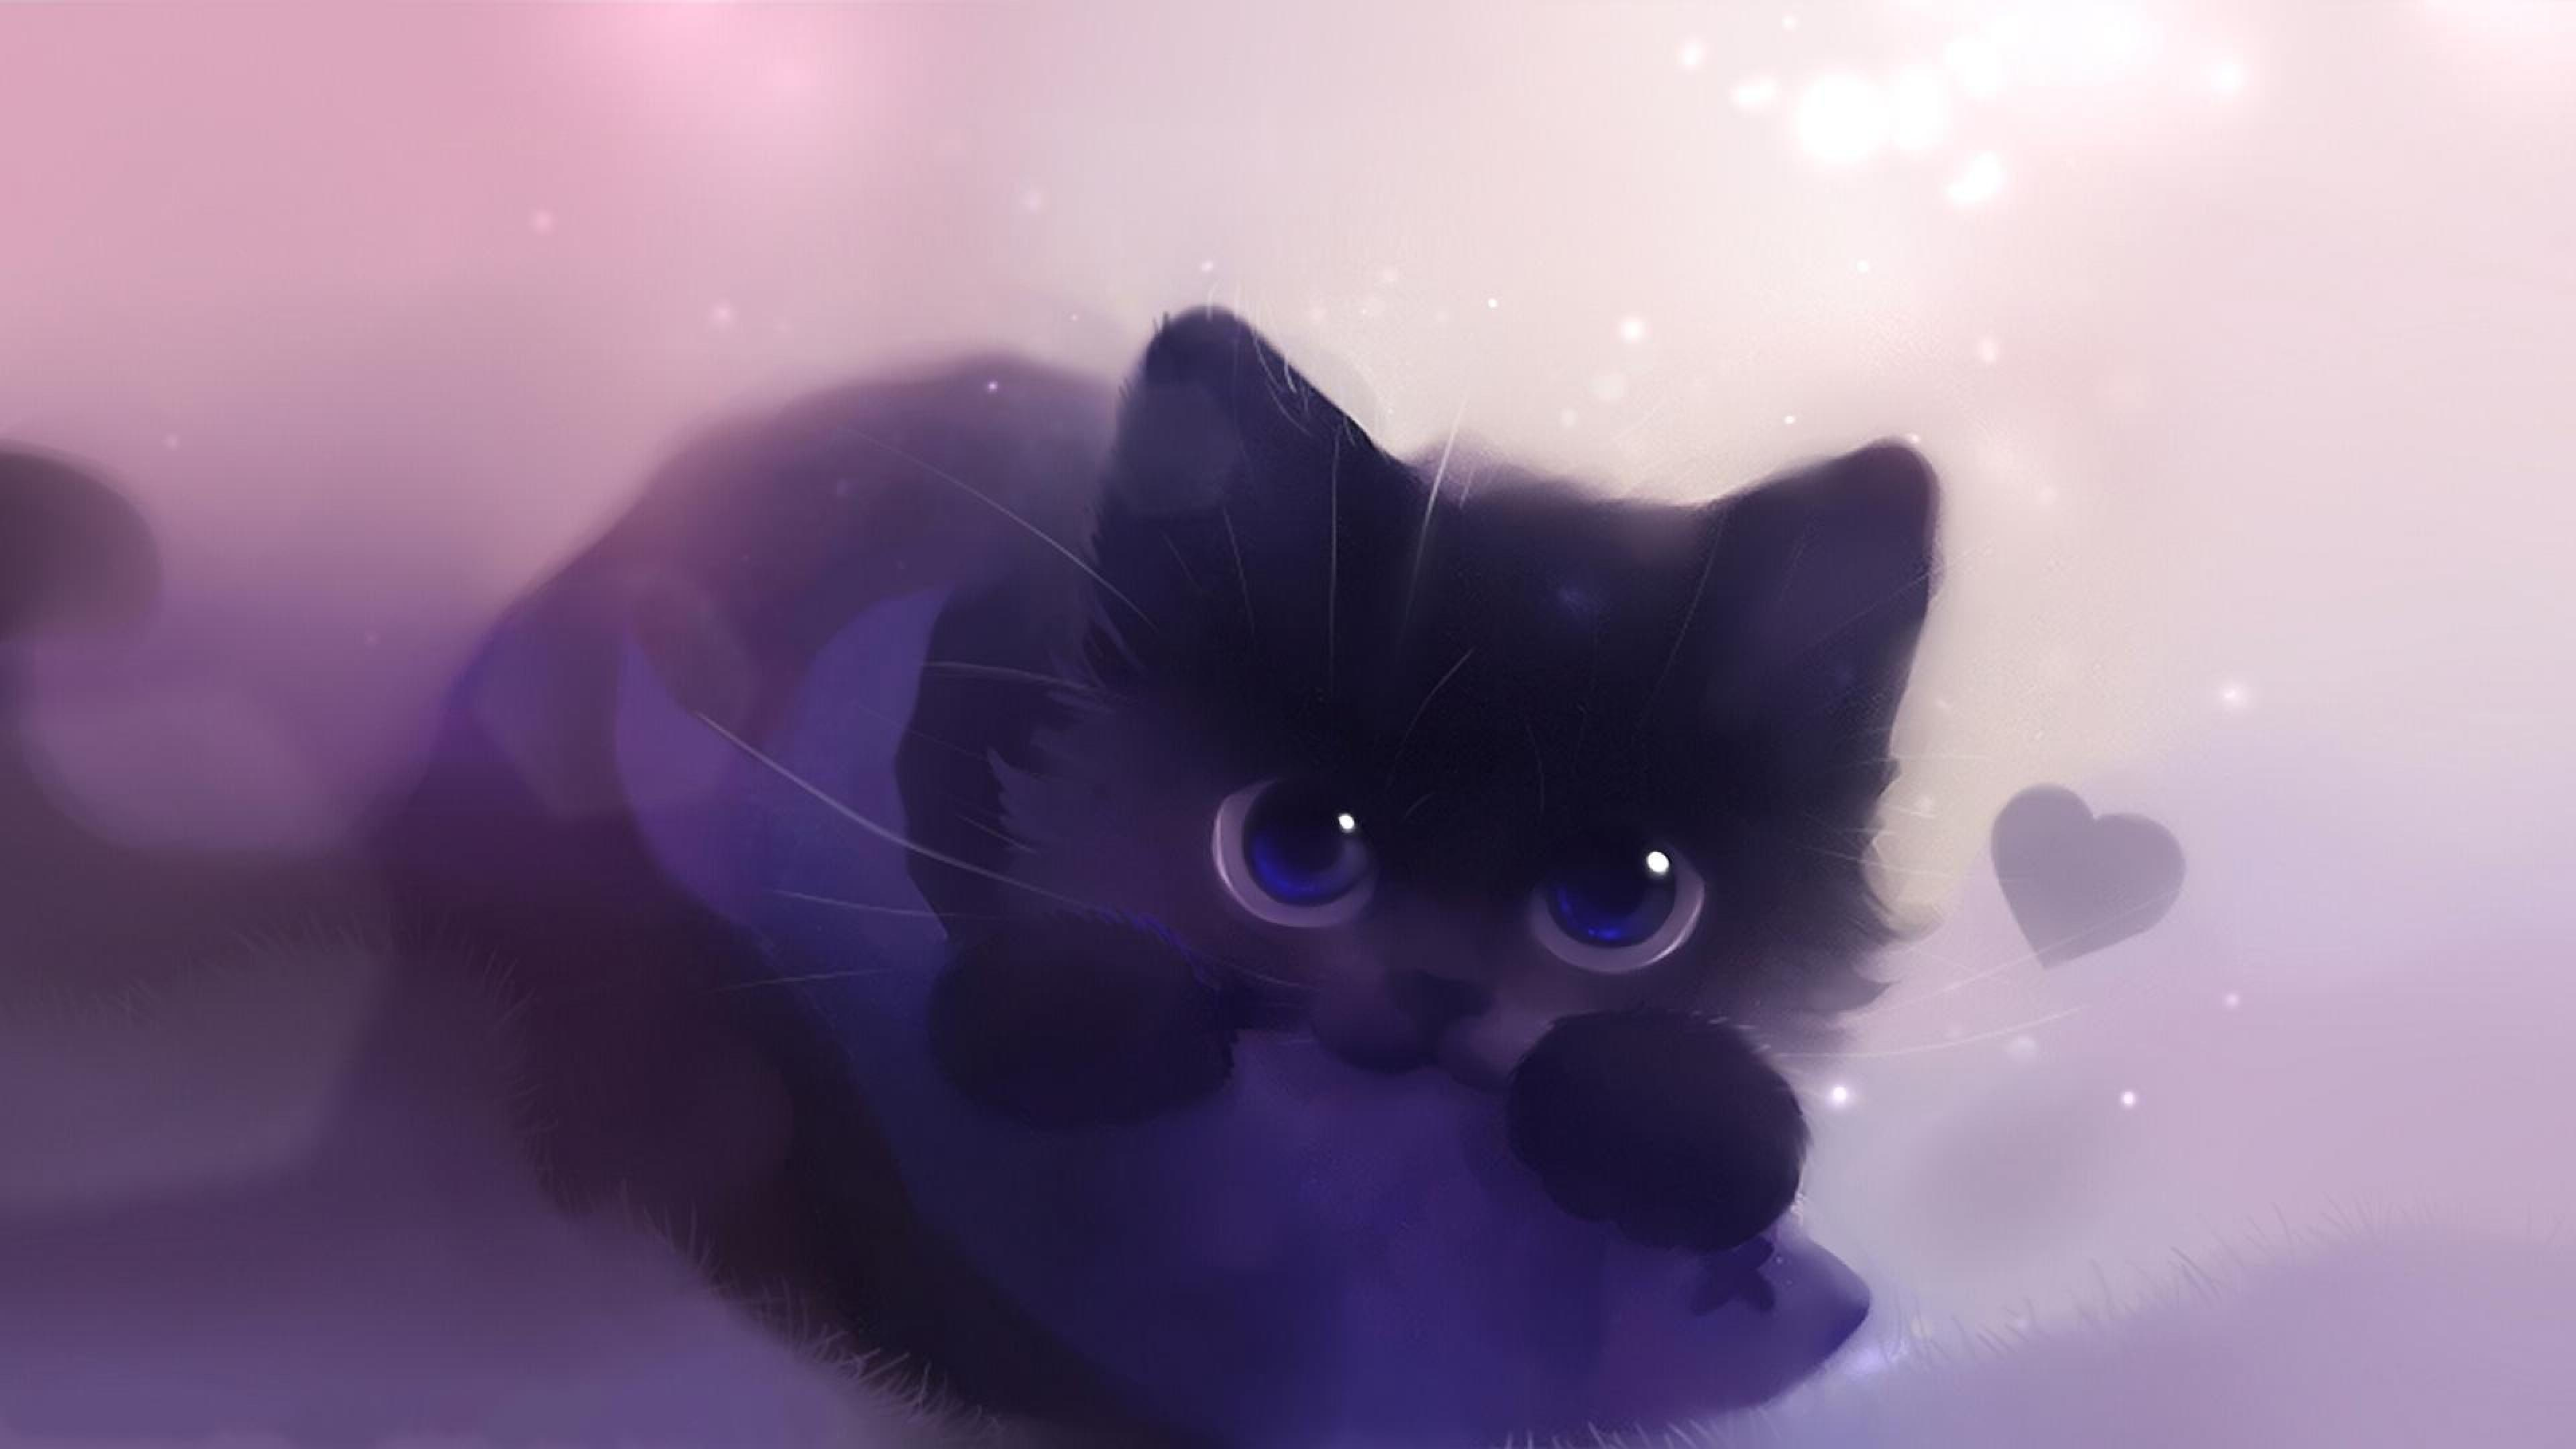 Galaxy cat wallpapers wallpaper cave - Anime cat wallpaper ...